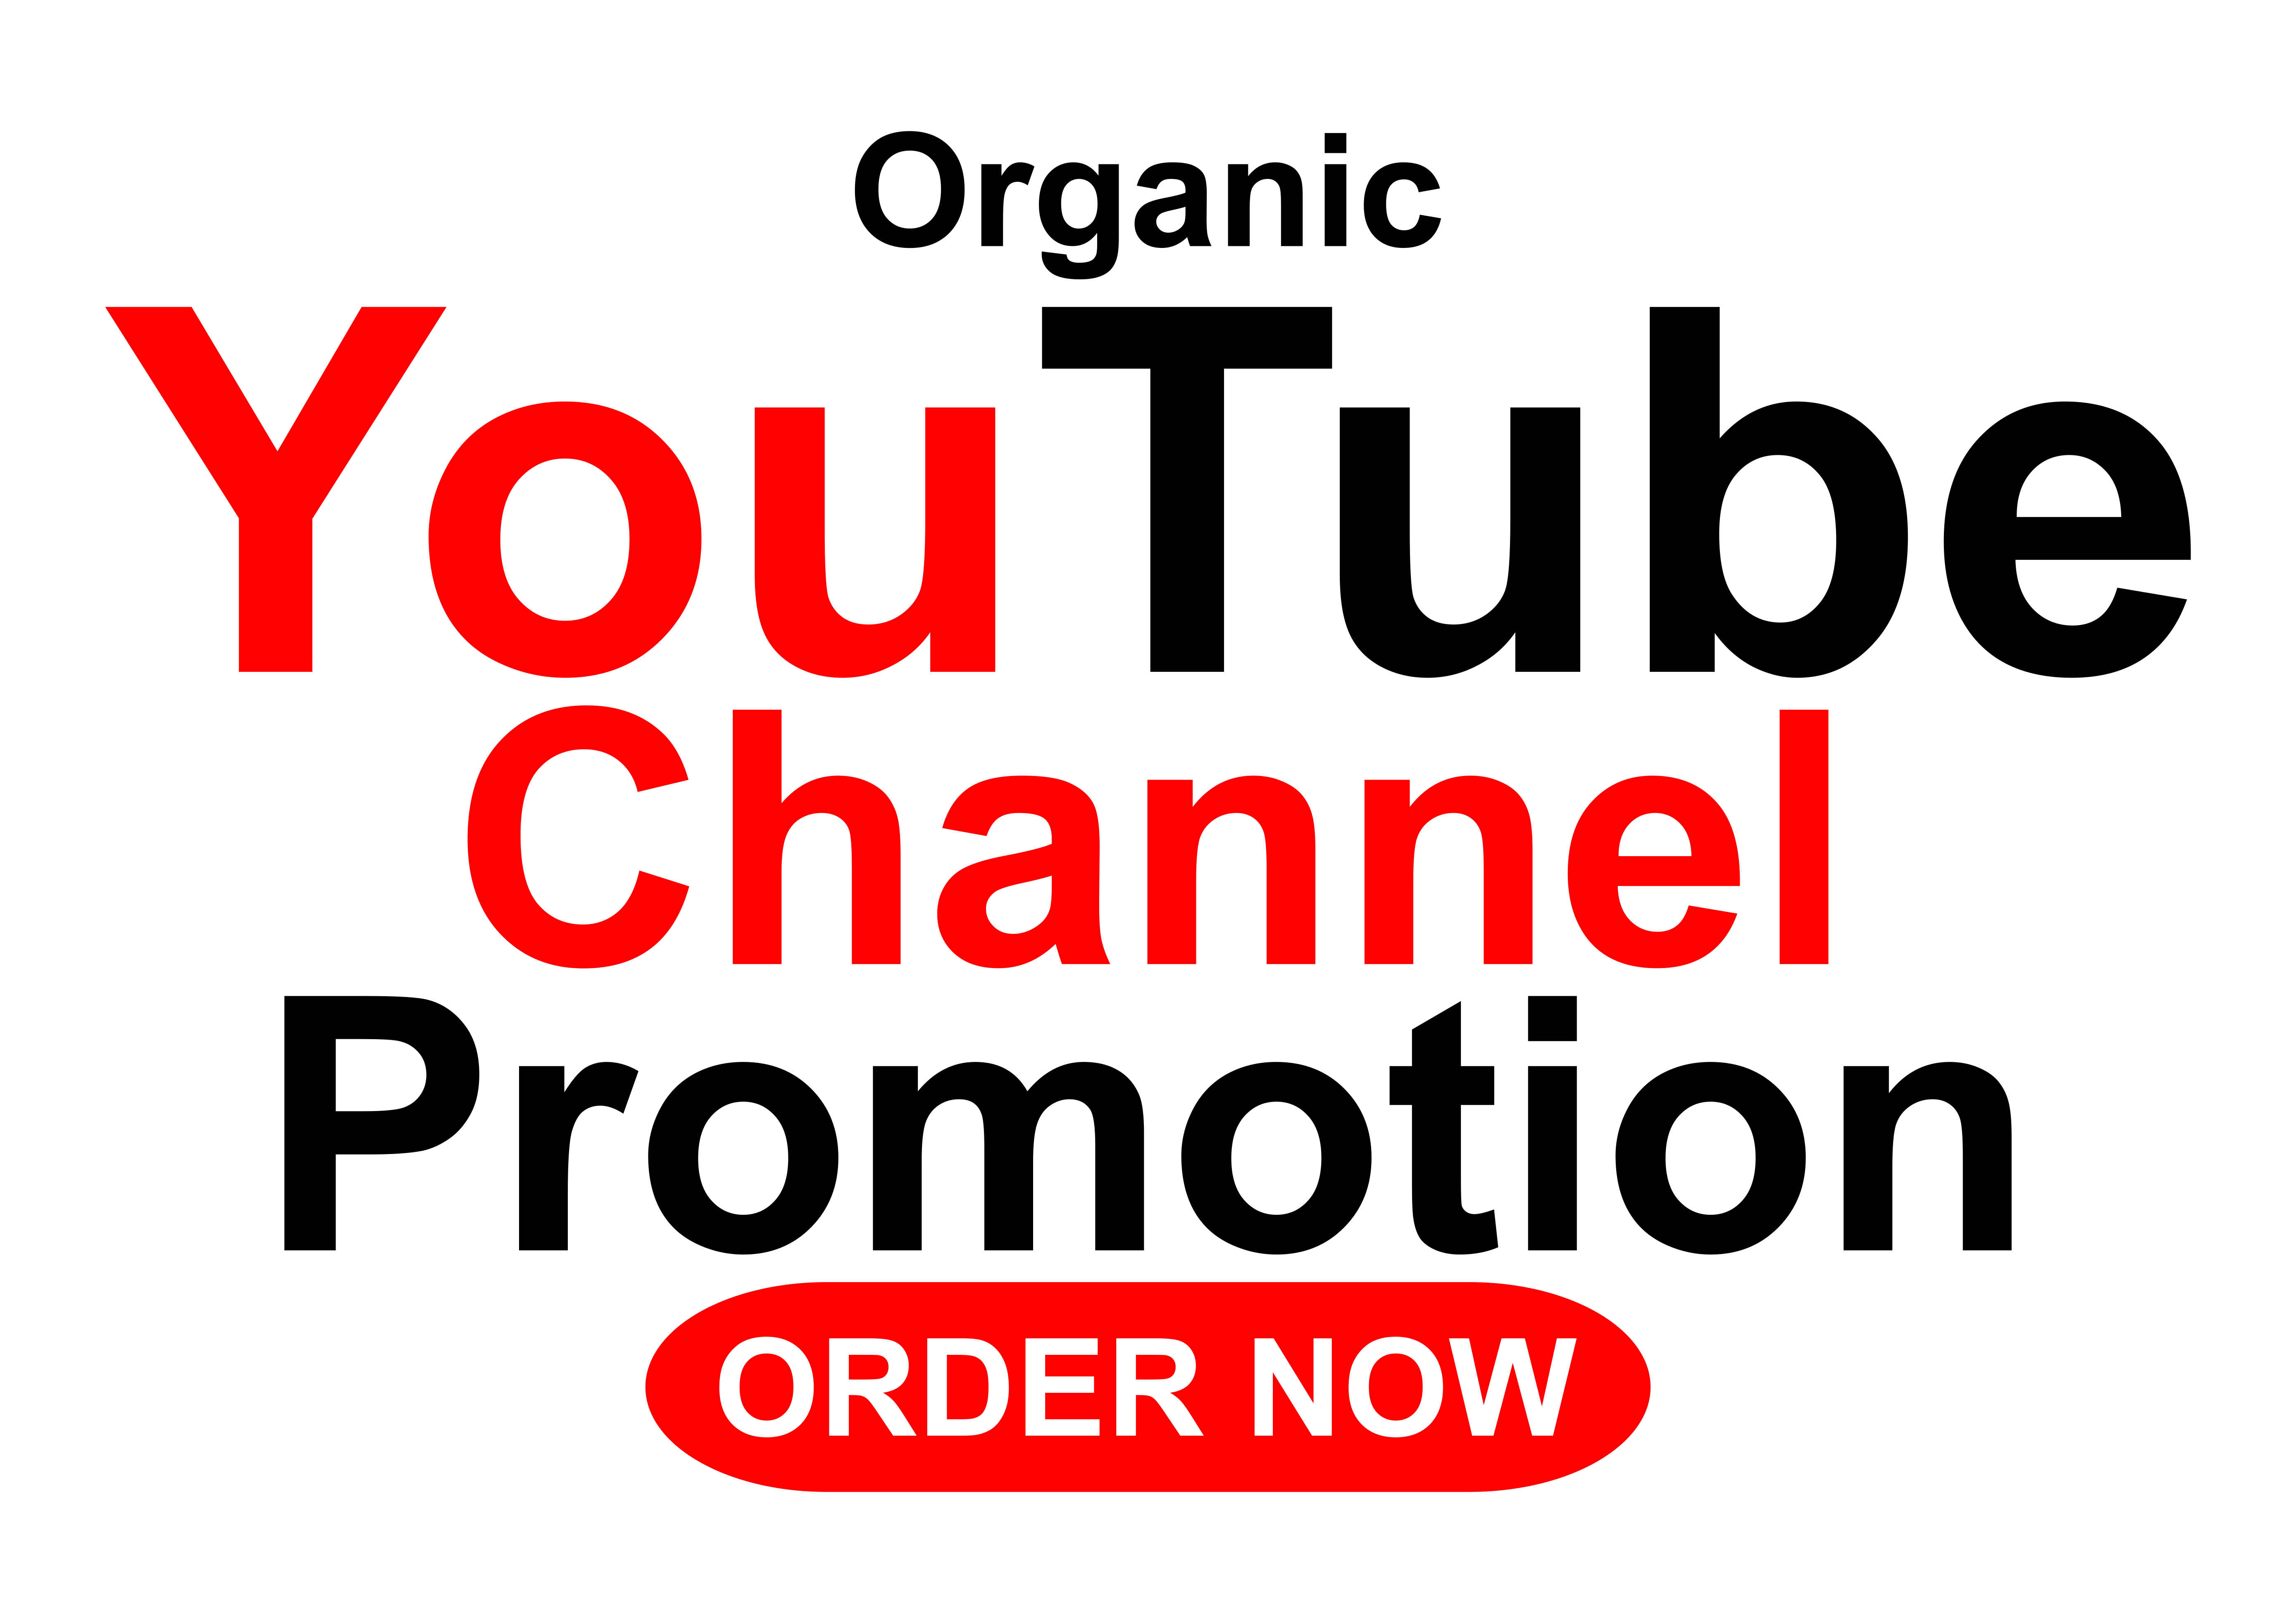 organically do promotion of channel